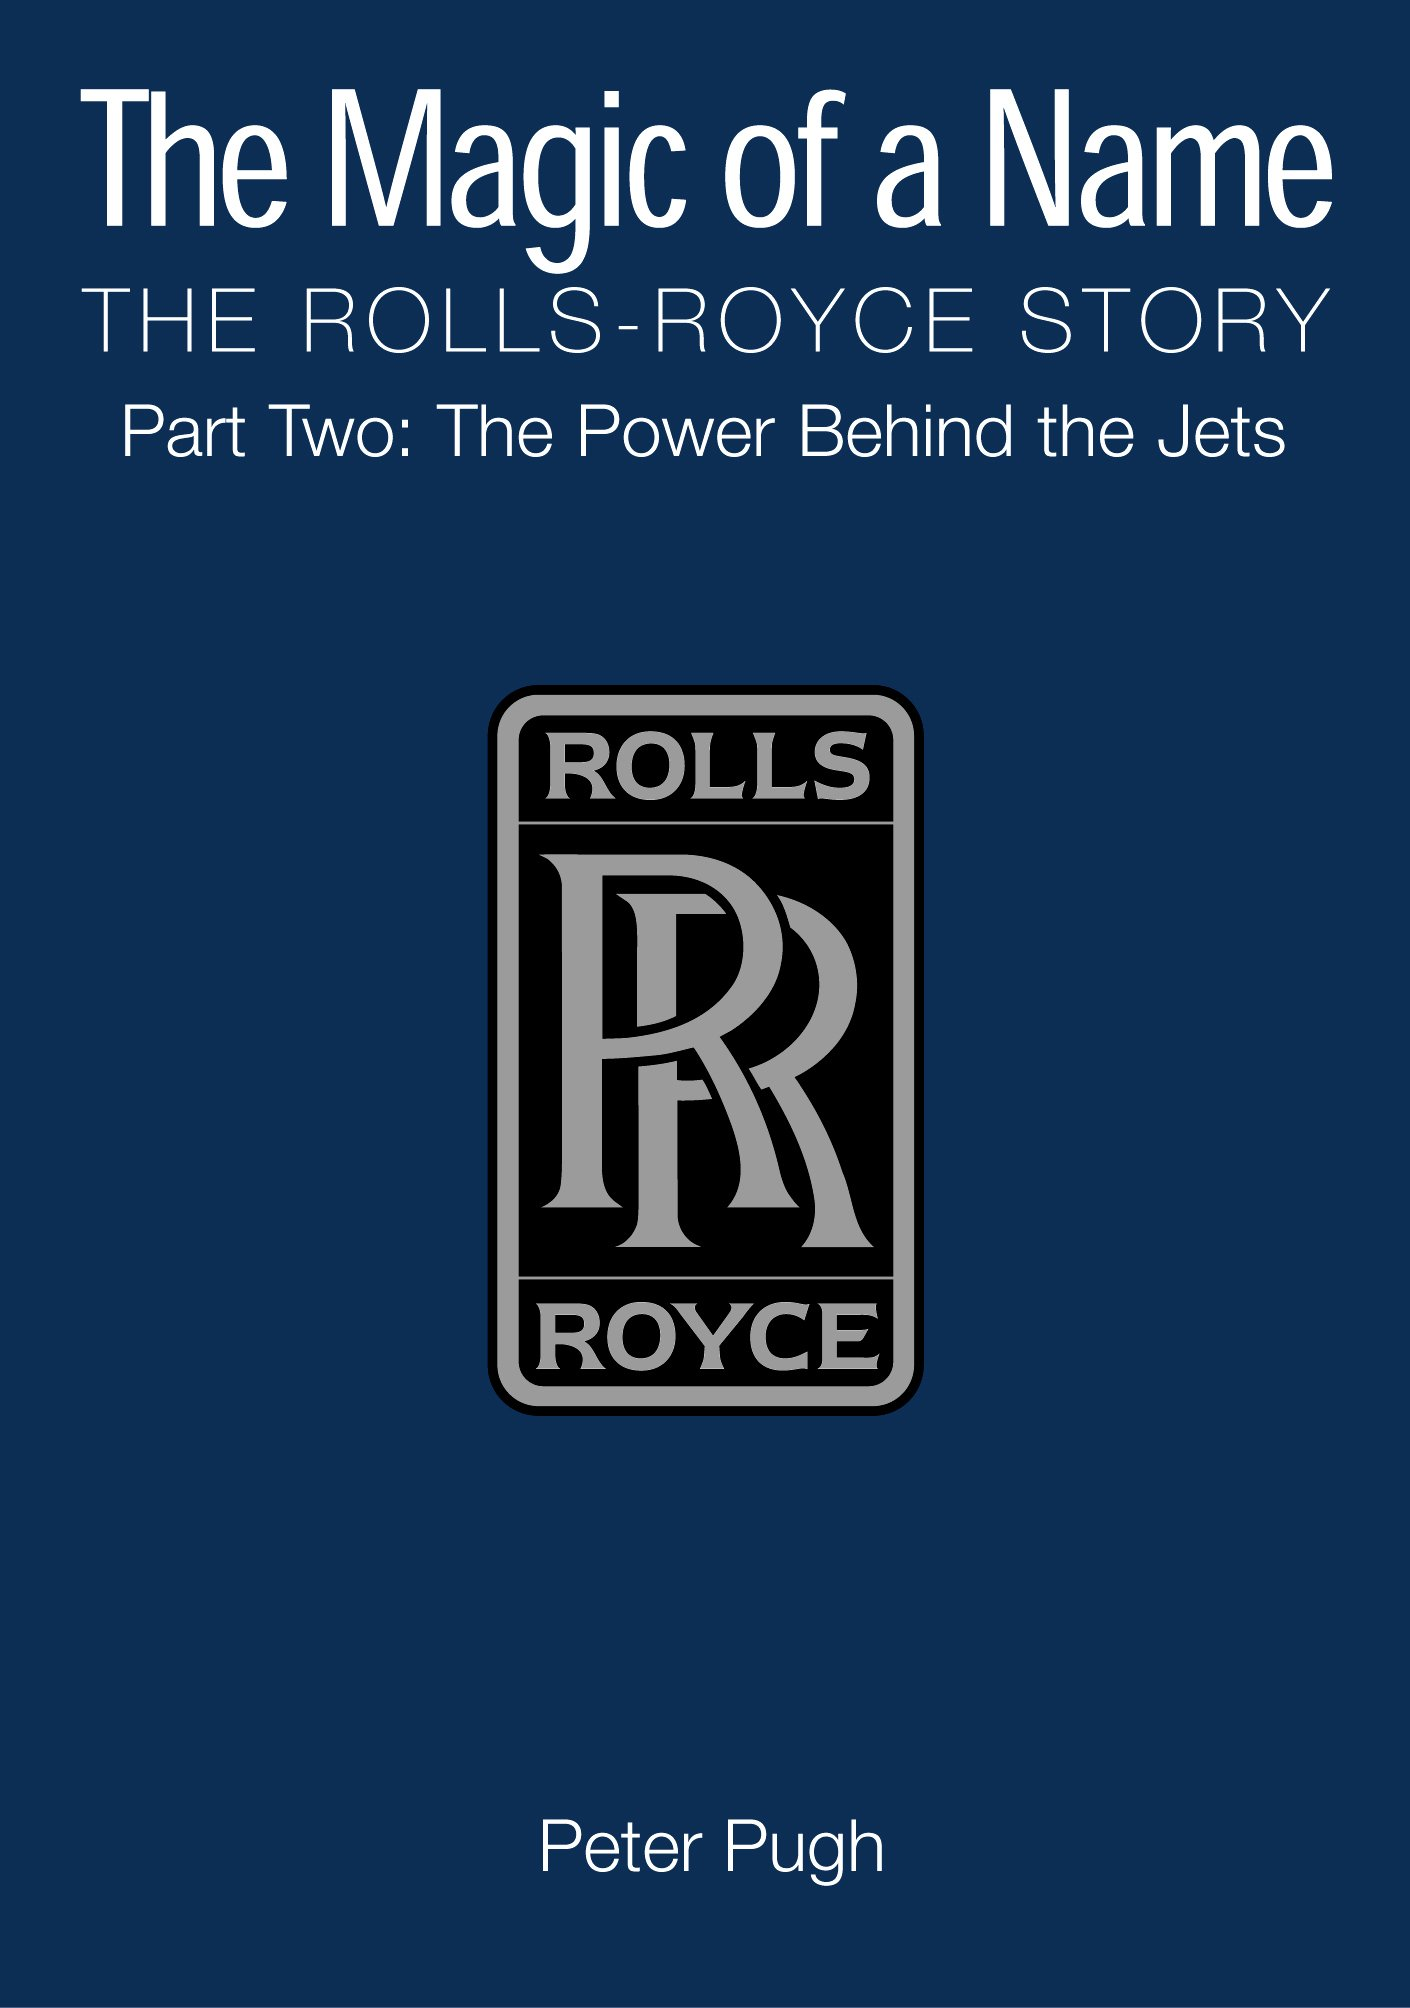 The Magic of a Name: The Rolls-Royce Story, Part Two: The Power Behind the Jets (Pt. 2)